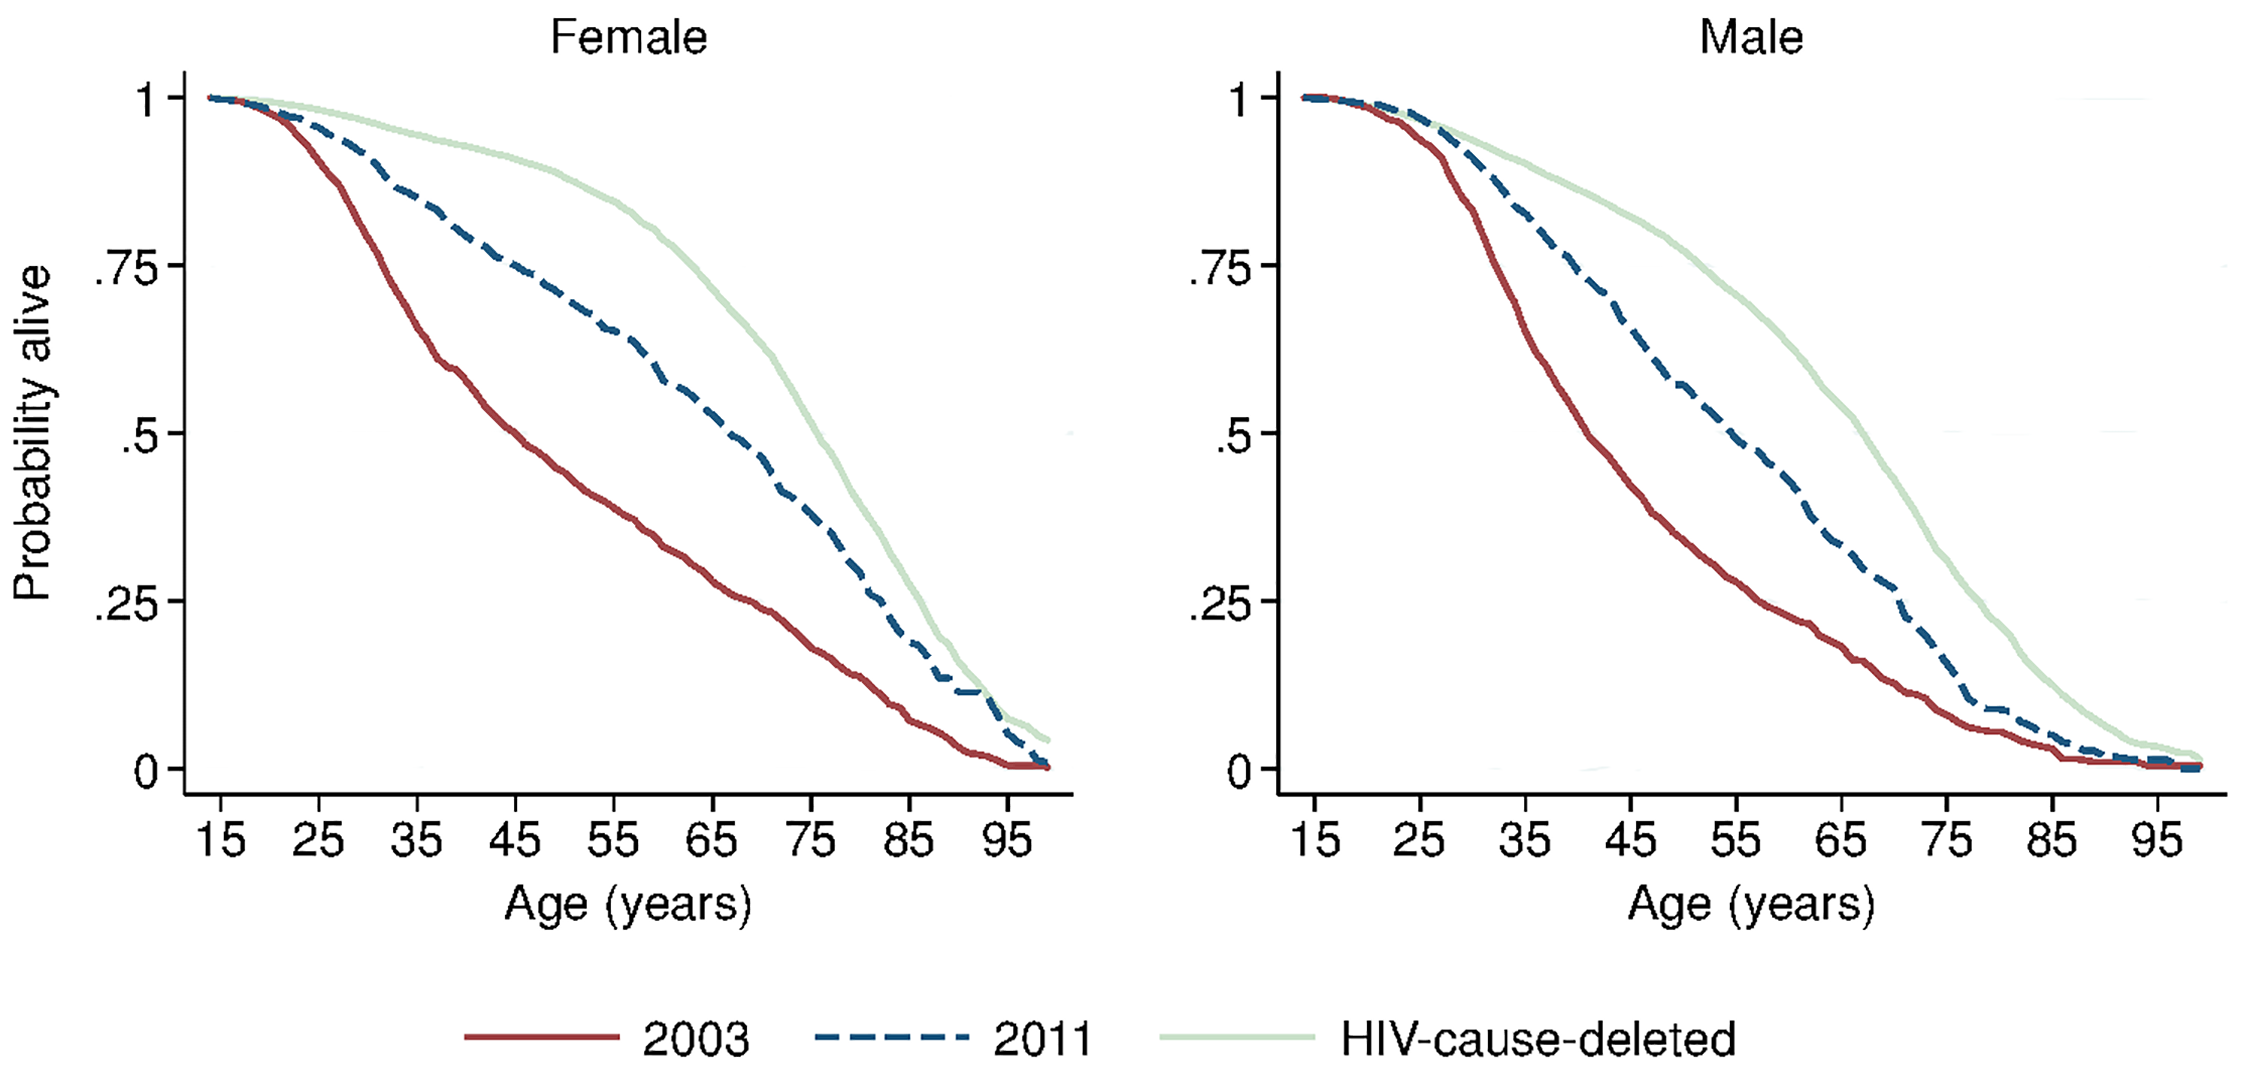 Sex-specific survival curves: 2003, 2011, and HIV-cause-deleted.